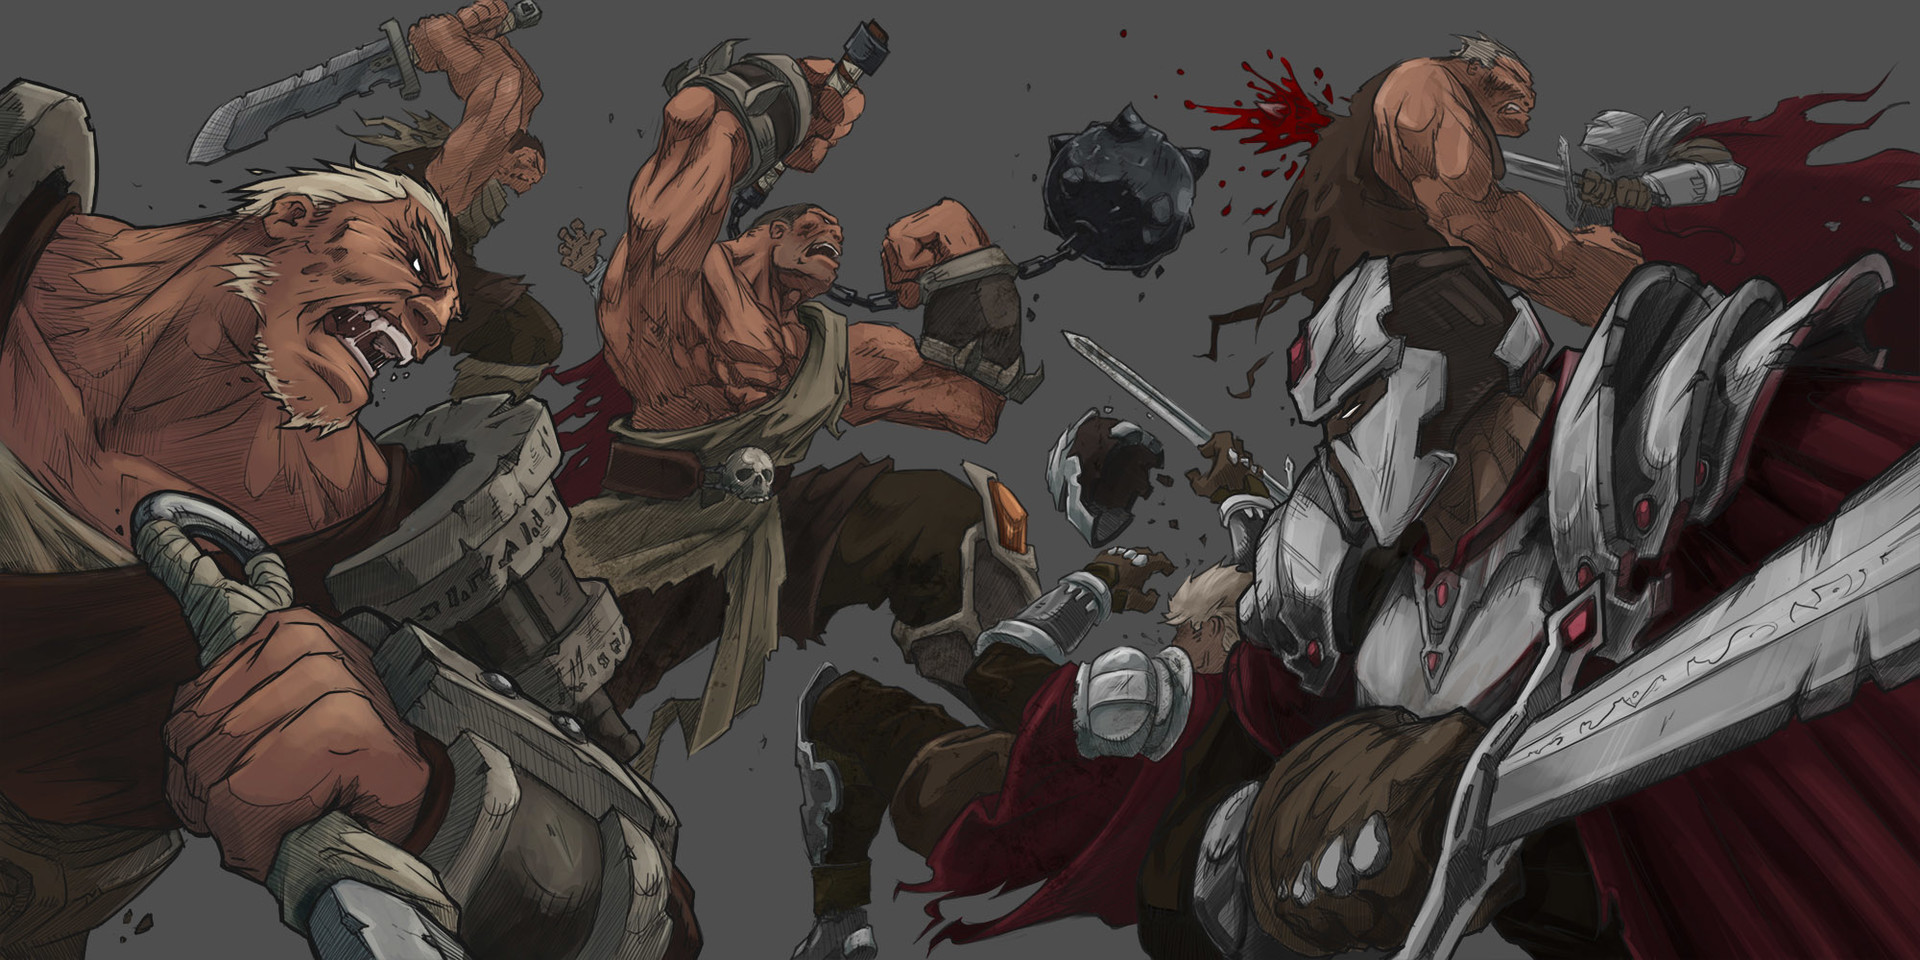 Quentin ghion big fight wip3